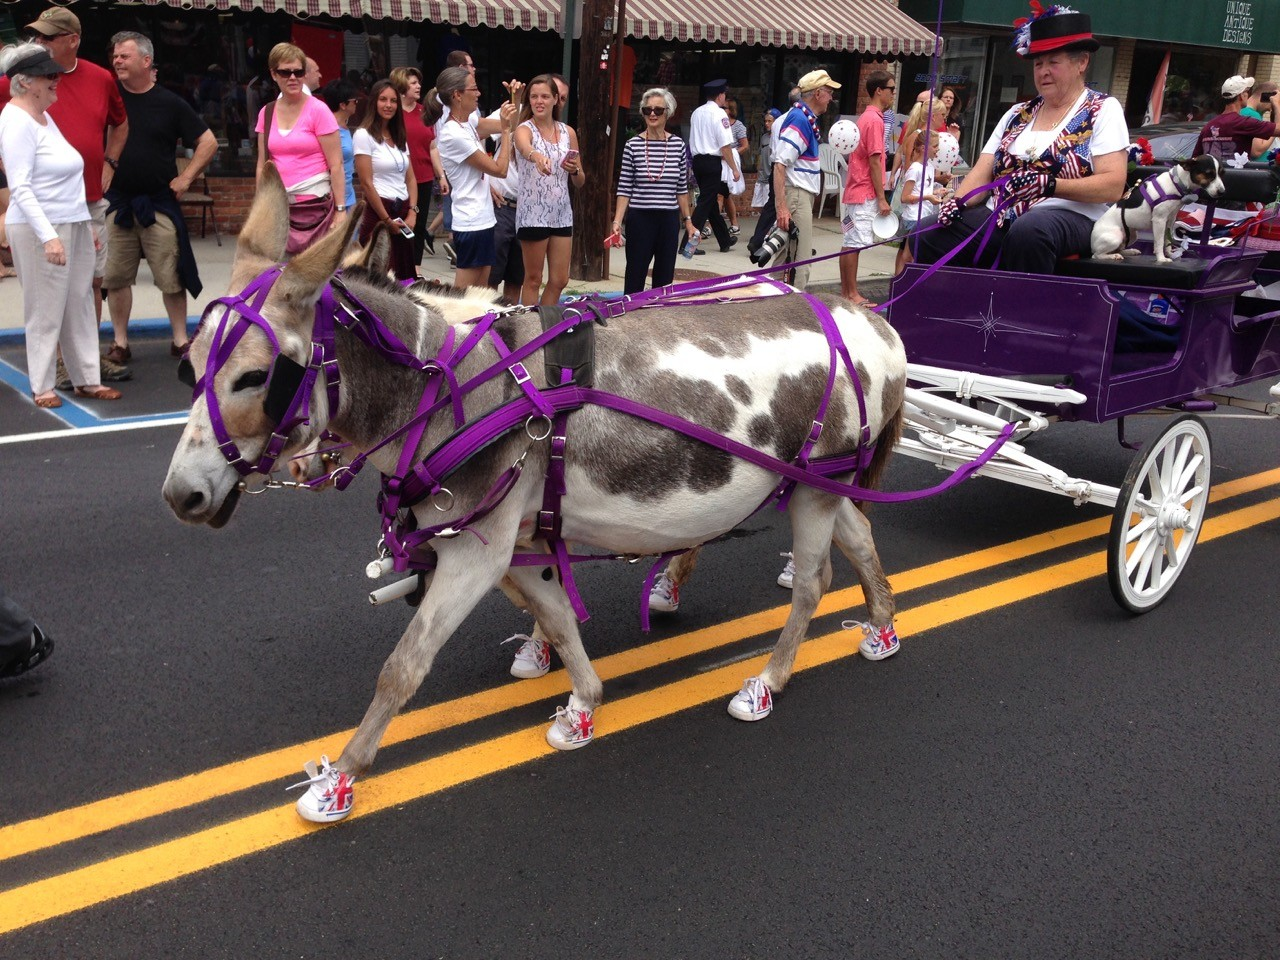 Horse in Southold 4th July parade